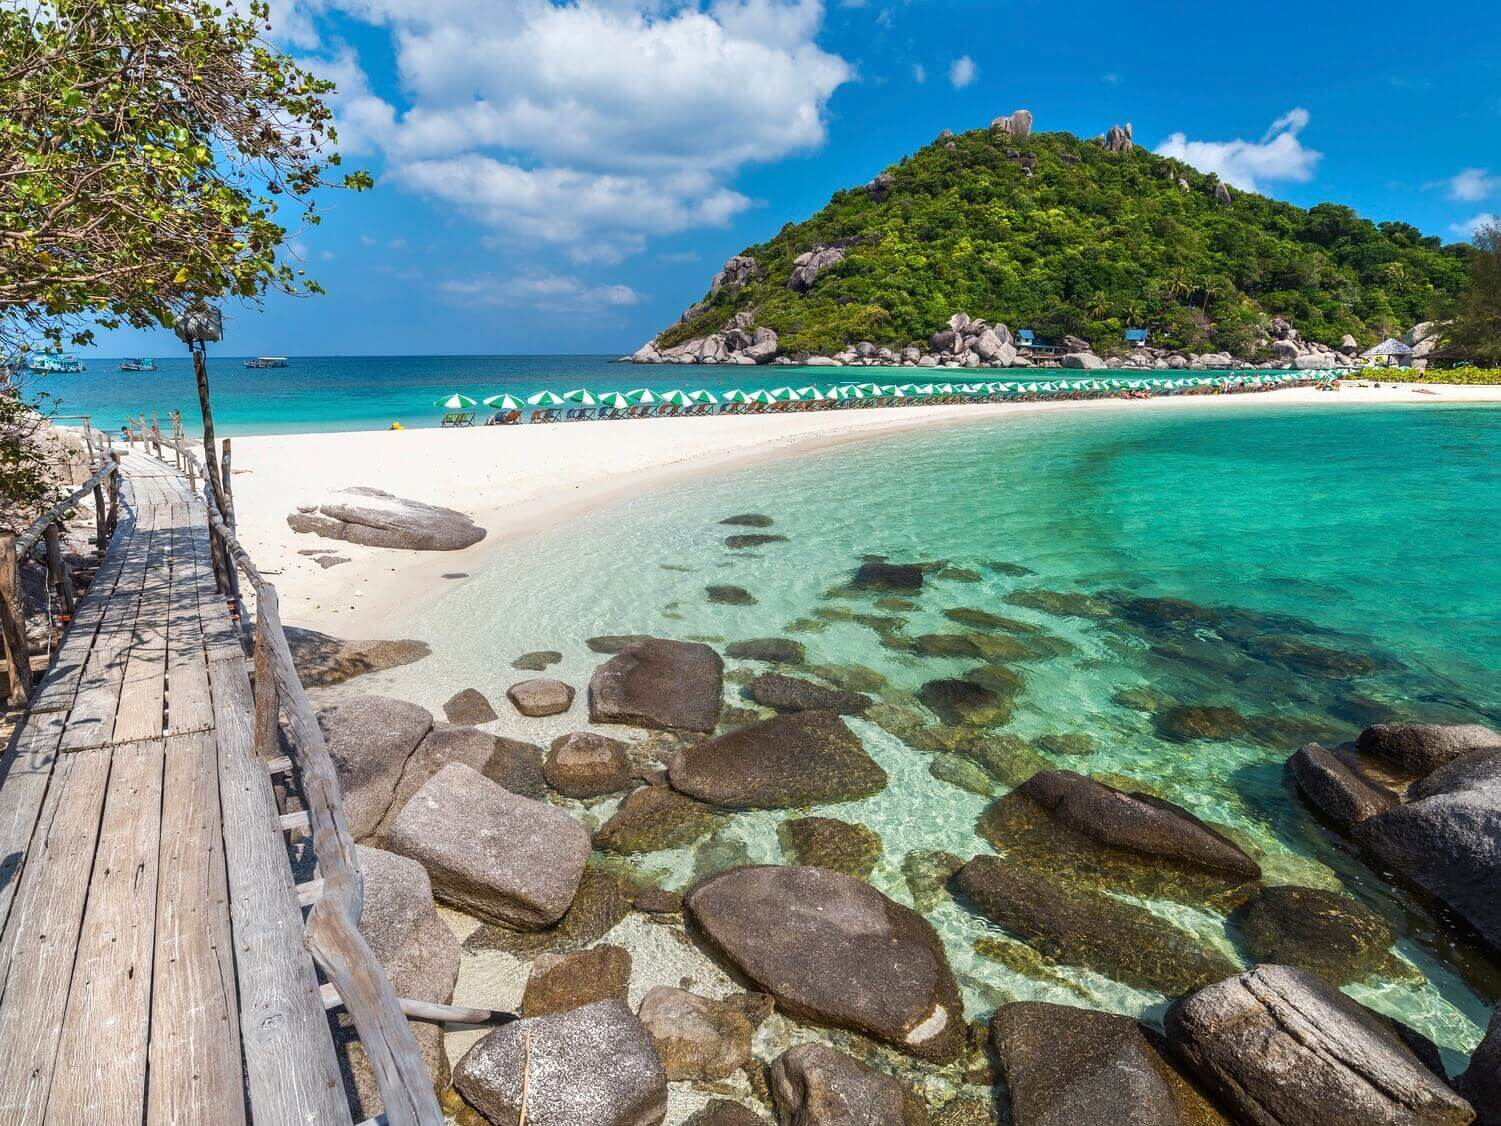 Koh Nang Yuan The Gulf Coast Beaches, Koh Tao And Koh Nang Yuan Day Tour By Private Speedboat Charter